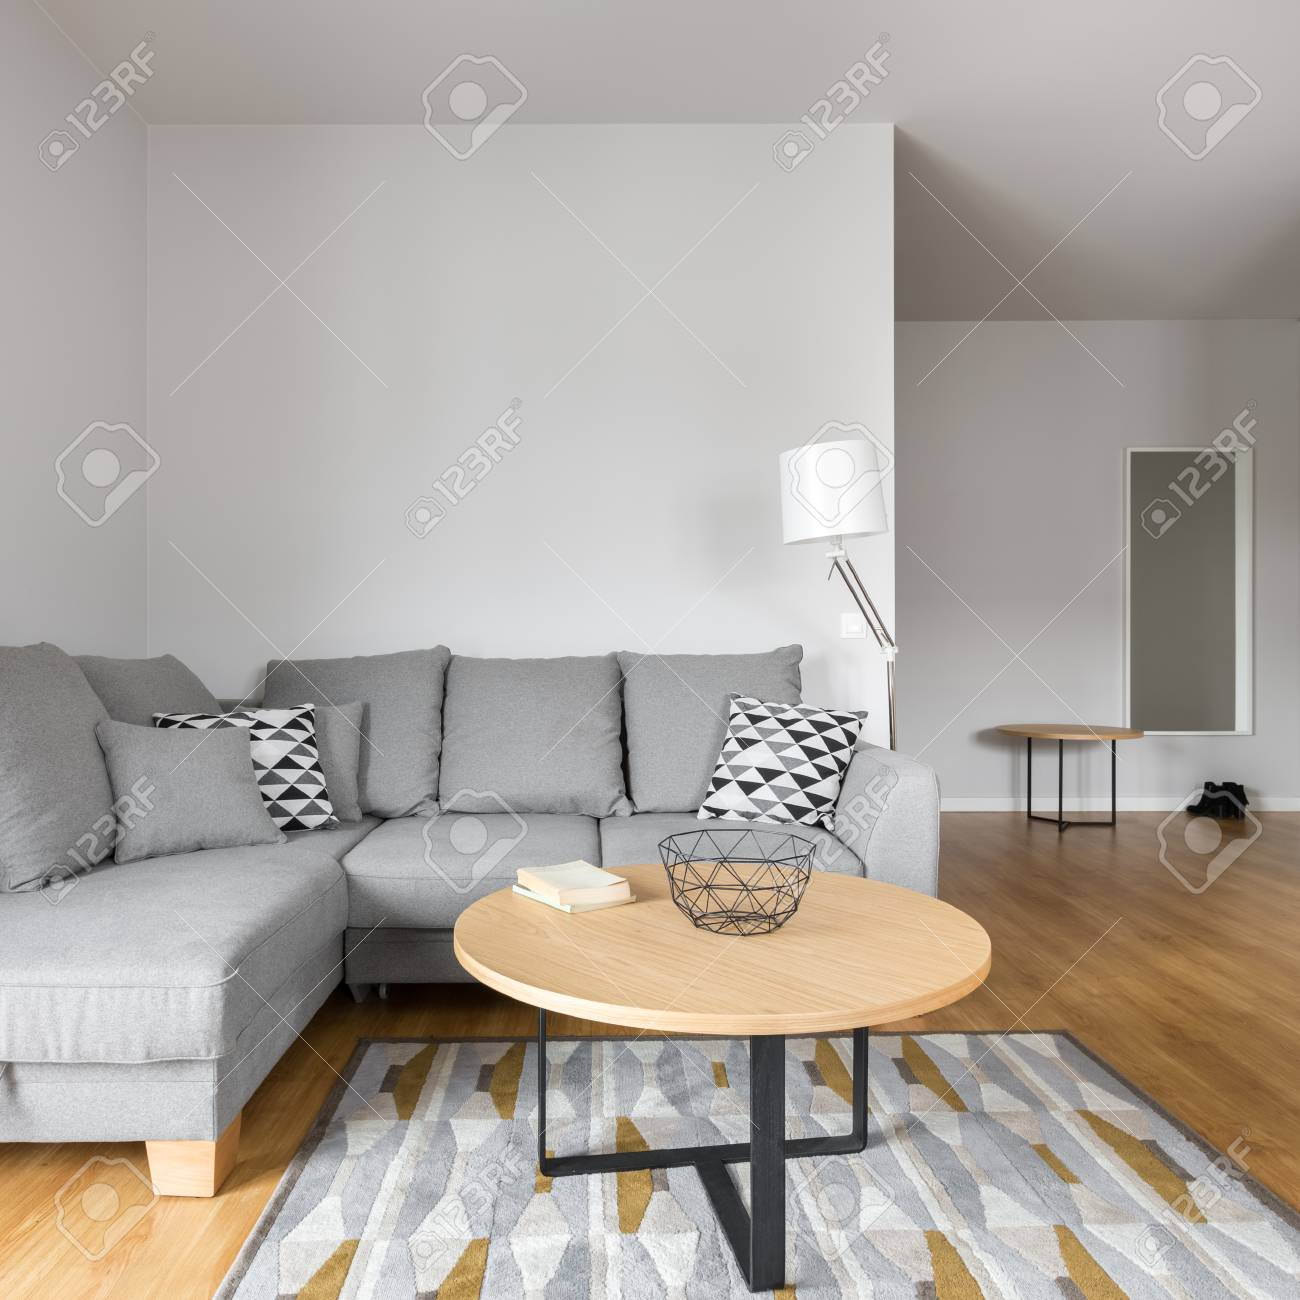 Square Sofa Square Photo Of Modern Living Room With Grey Sofa And Round Table